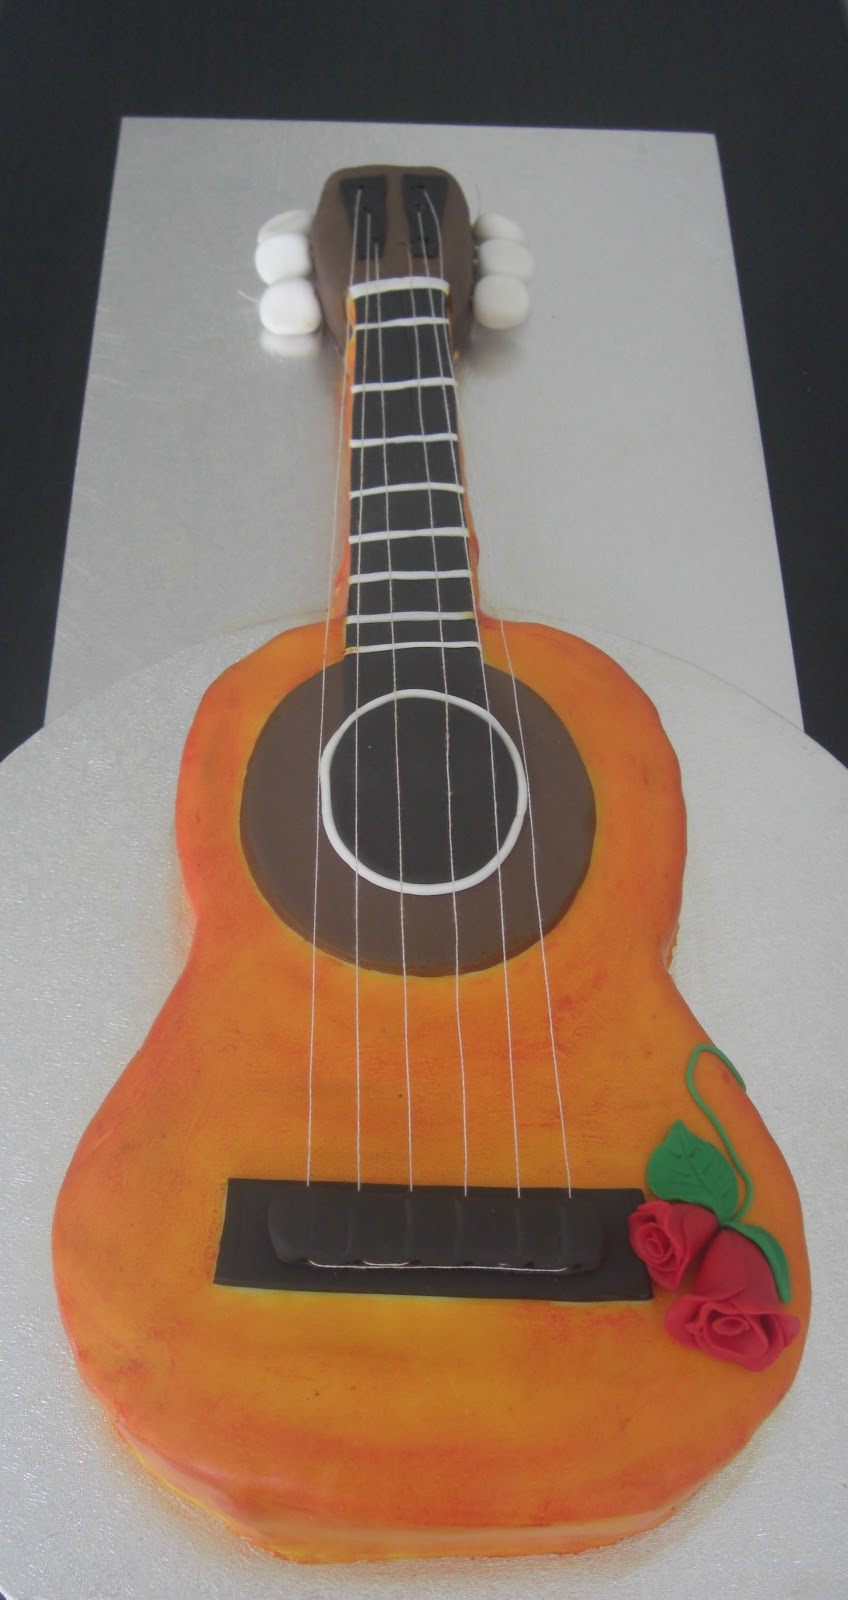 http://www.lacestadeblancanieves.com/search/label/guitarra%20espa%C3%B1ola